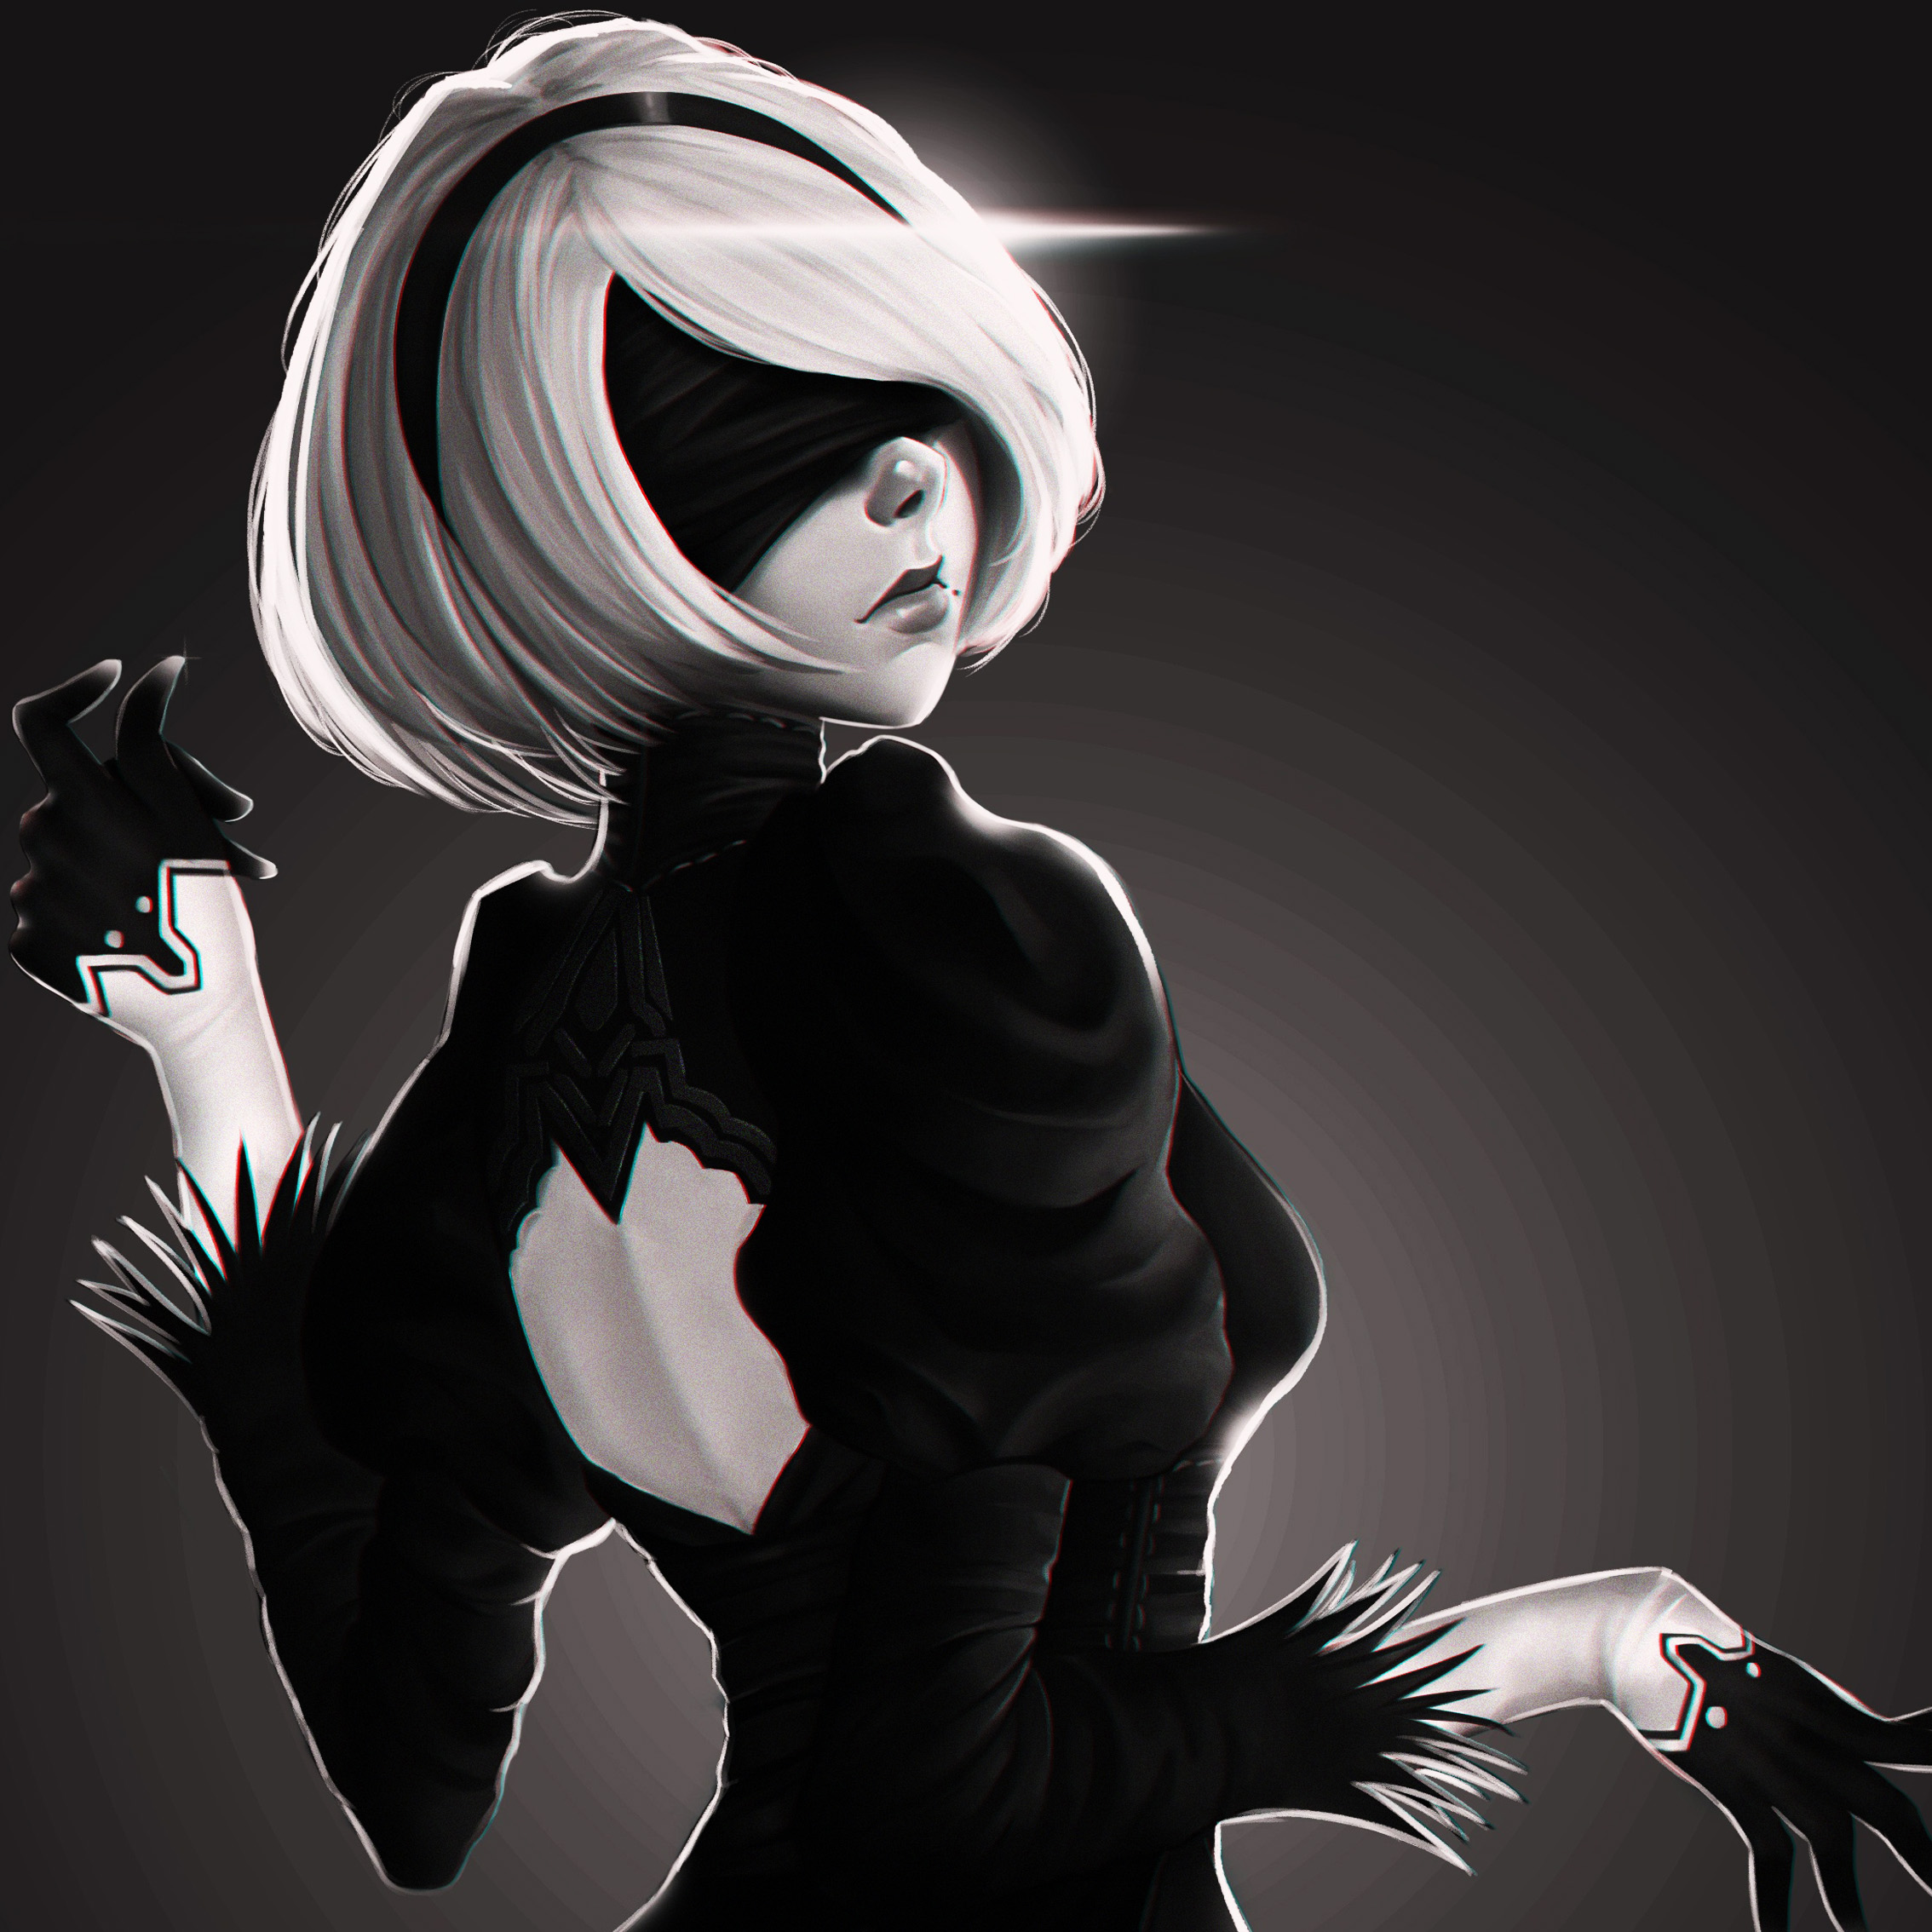 Dress Nier Automata Yorha White Hair Girl Platinum Games